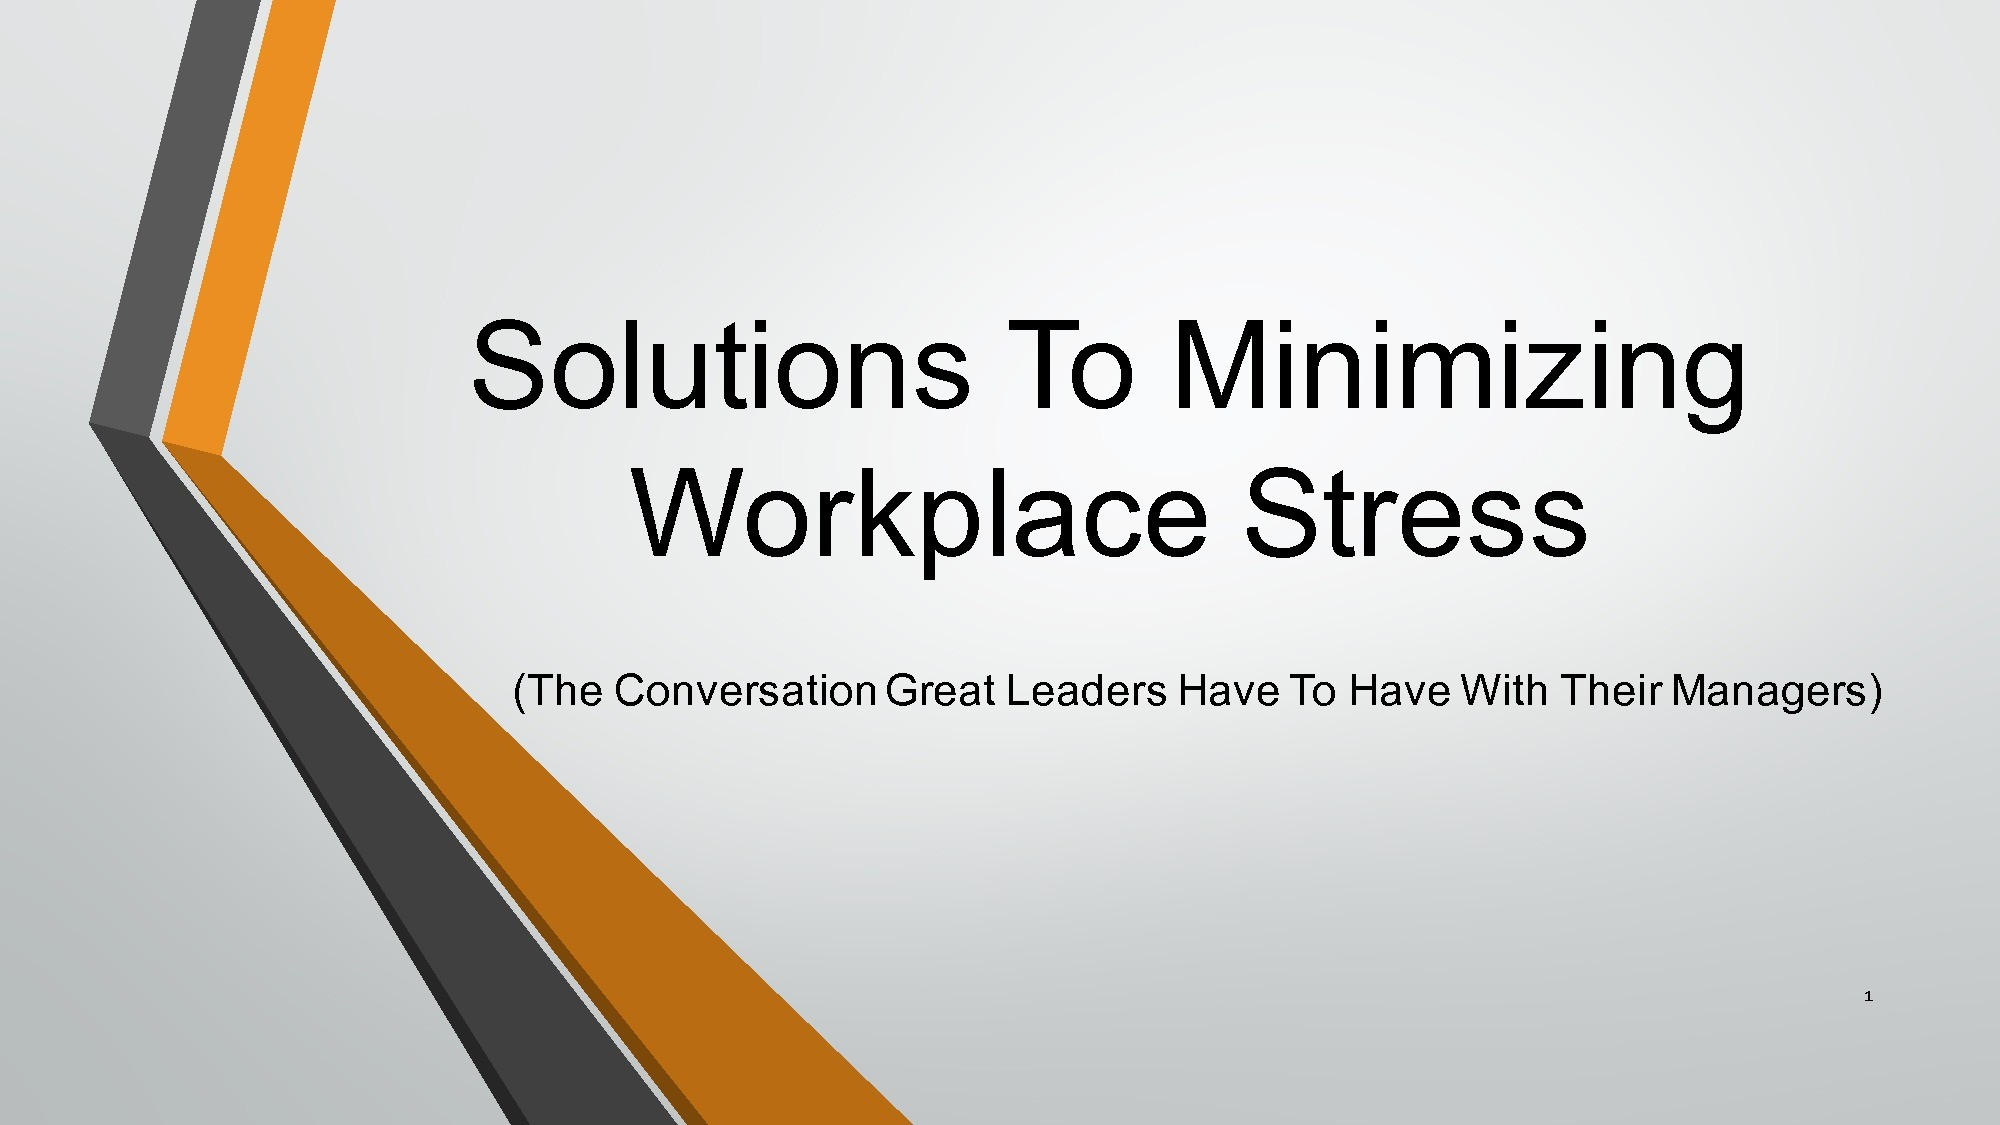 Solutions To Minimizing Workplace Stress